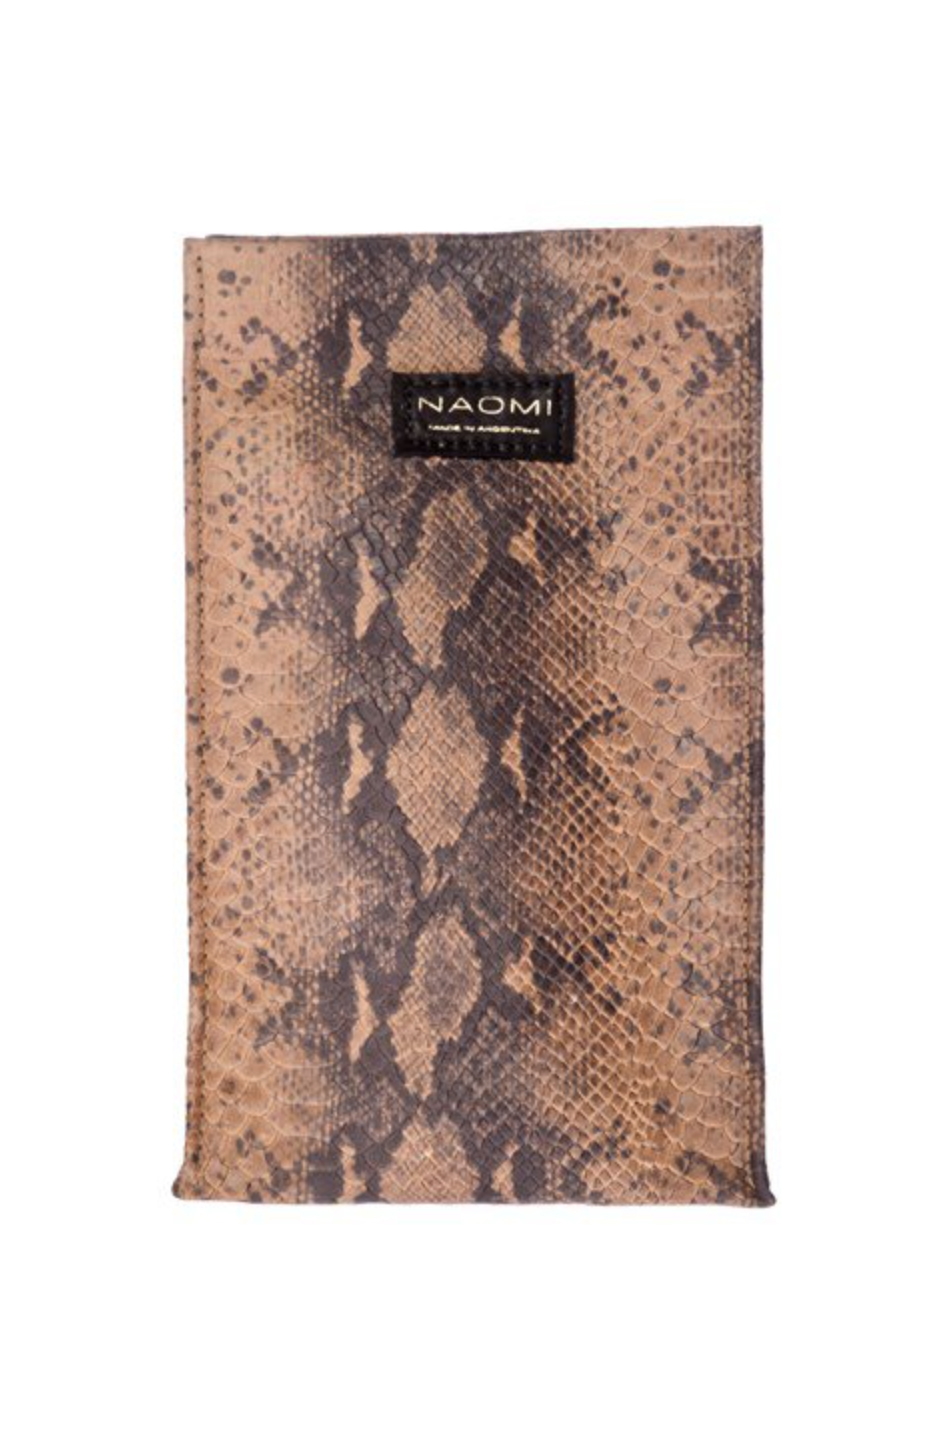 Naomi-Preizler-Paper-Bag-Invierno-2015-Python-Brown.jpg